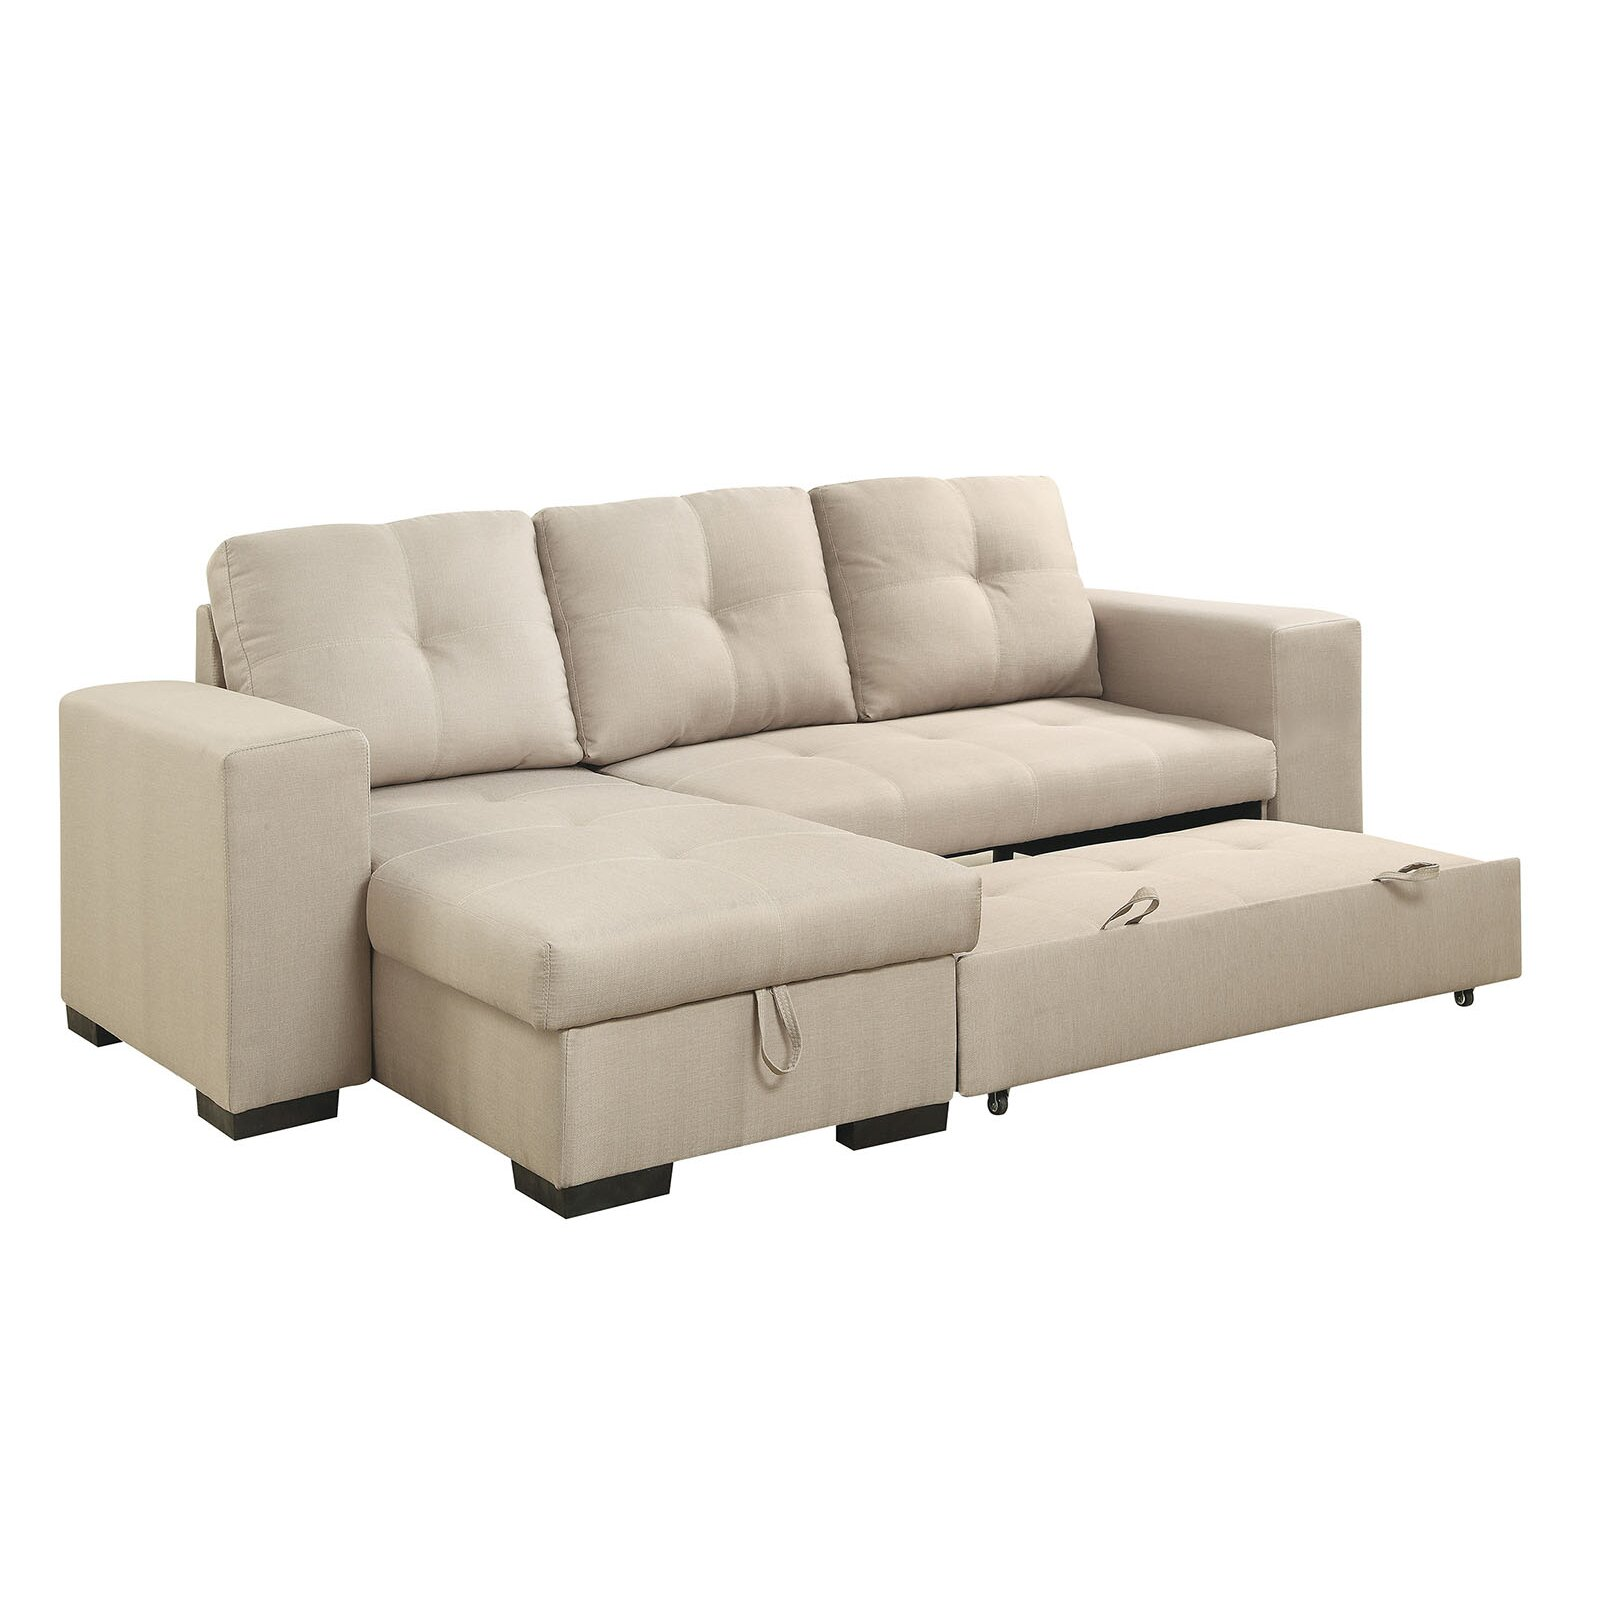 Sectional sleeper sofa chaise sterling beige memory foam for Alexander sectional sofa chaise